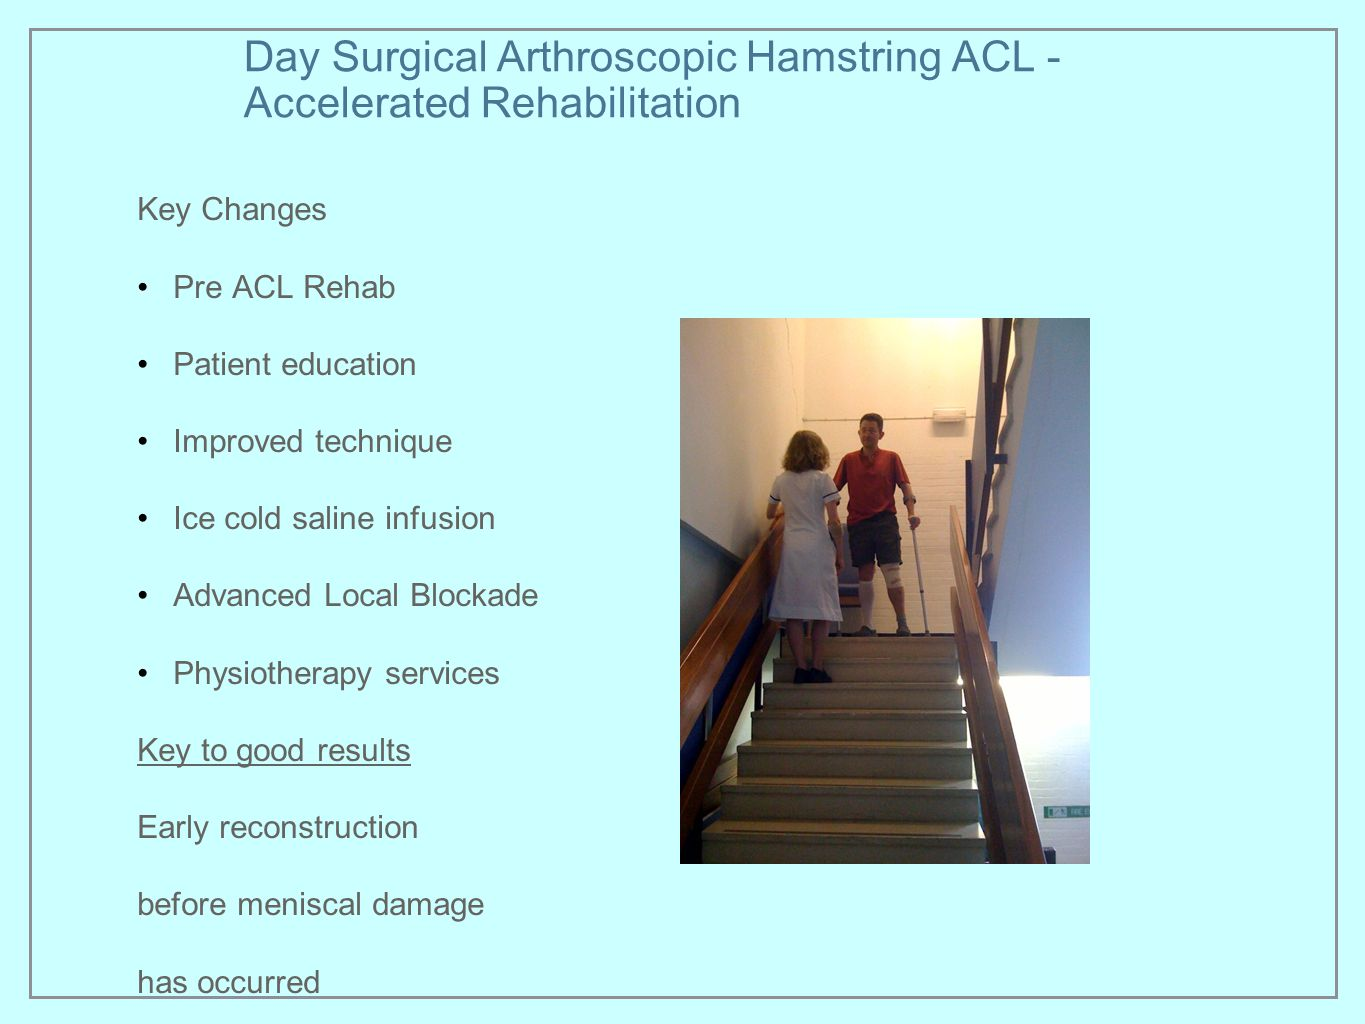 Day Surgical Arthroscopic Hamstring ACL - Accelerated Rehabilitation Key Changes Pre ACL Rehab Patient education Improved technique Ice cold saline in